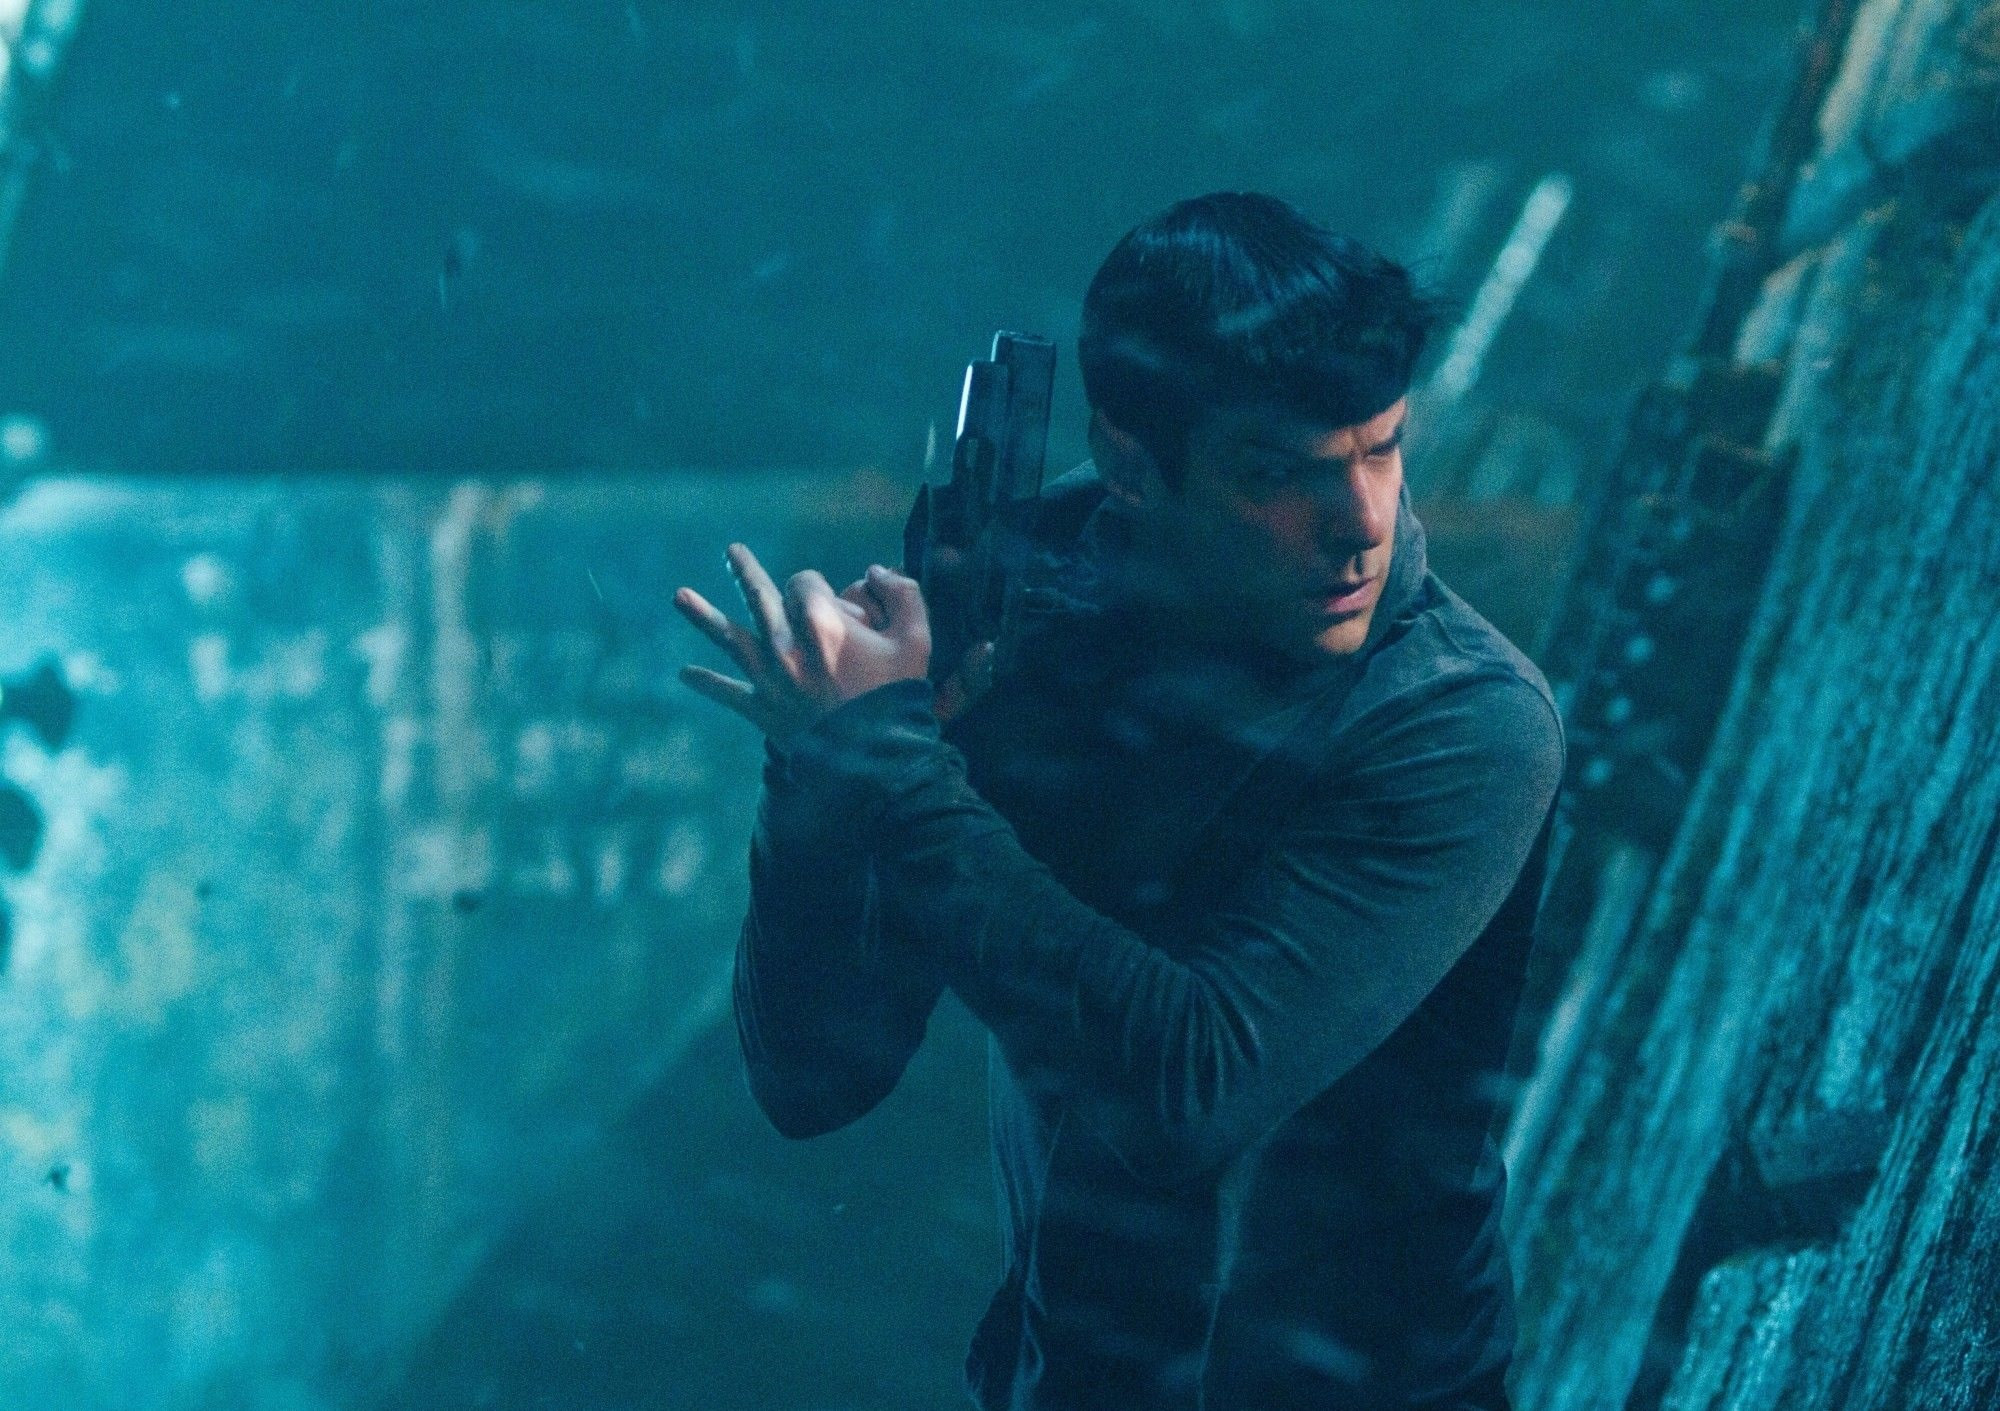 movie review star trek into darkness by kamran jawaid